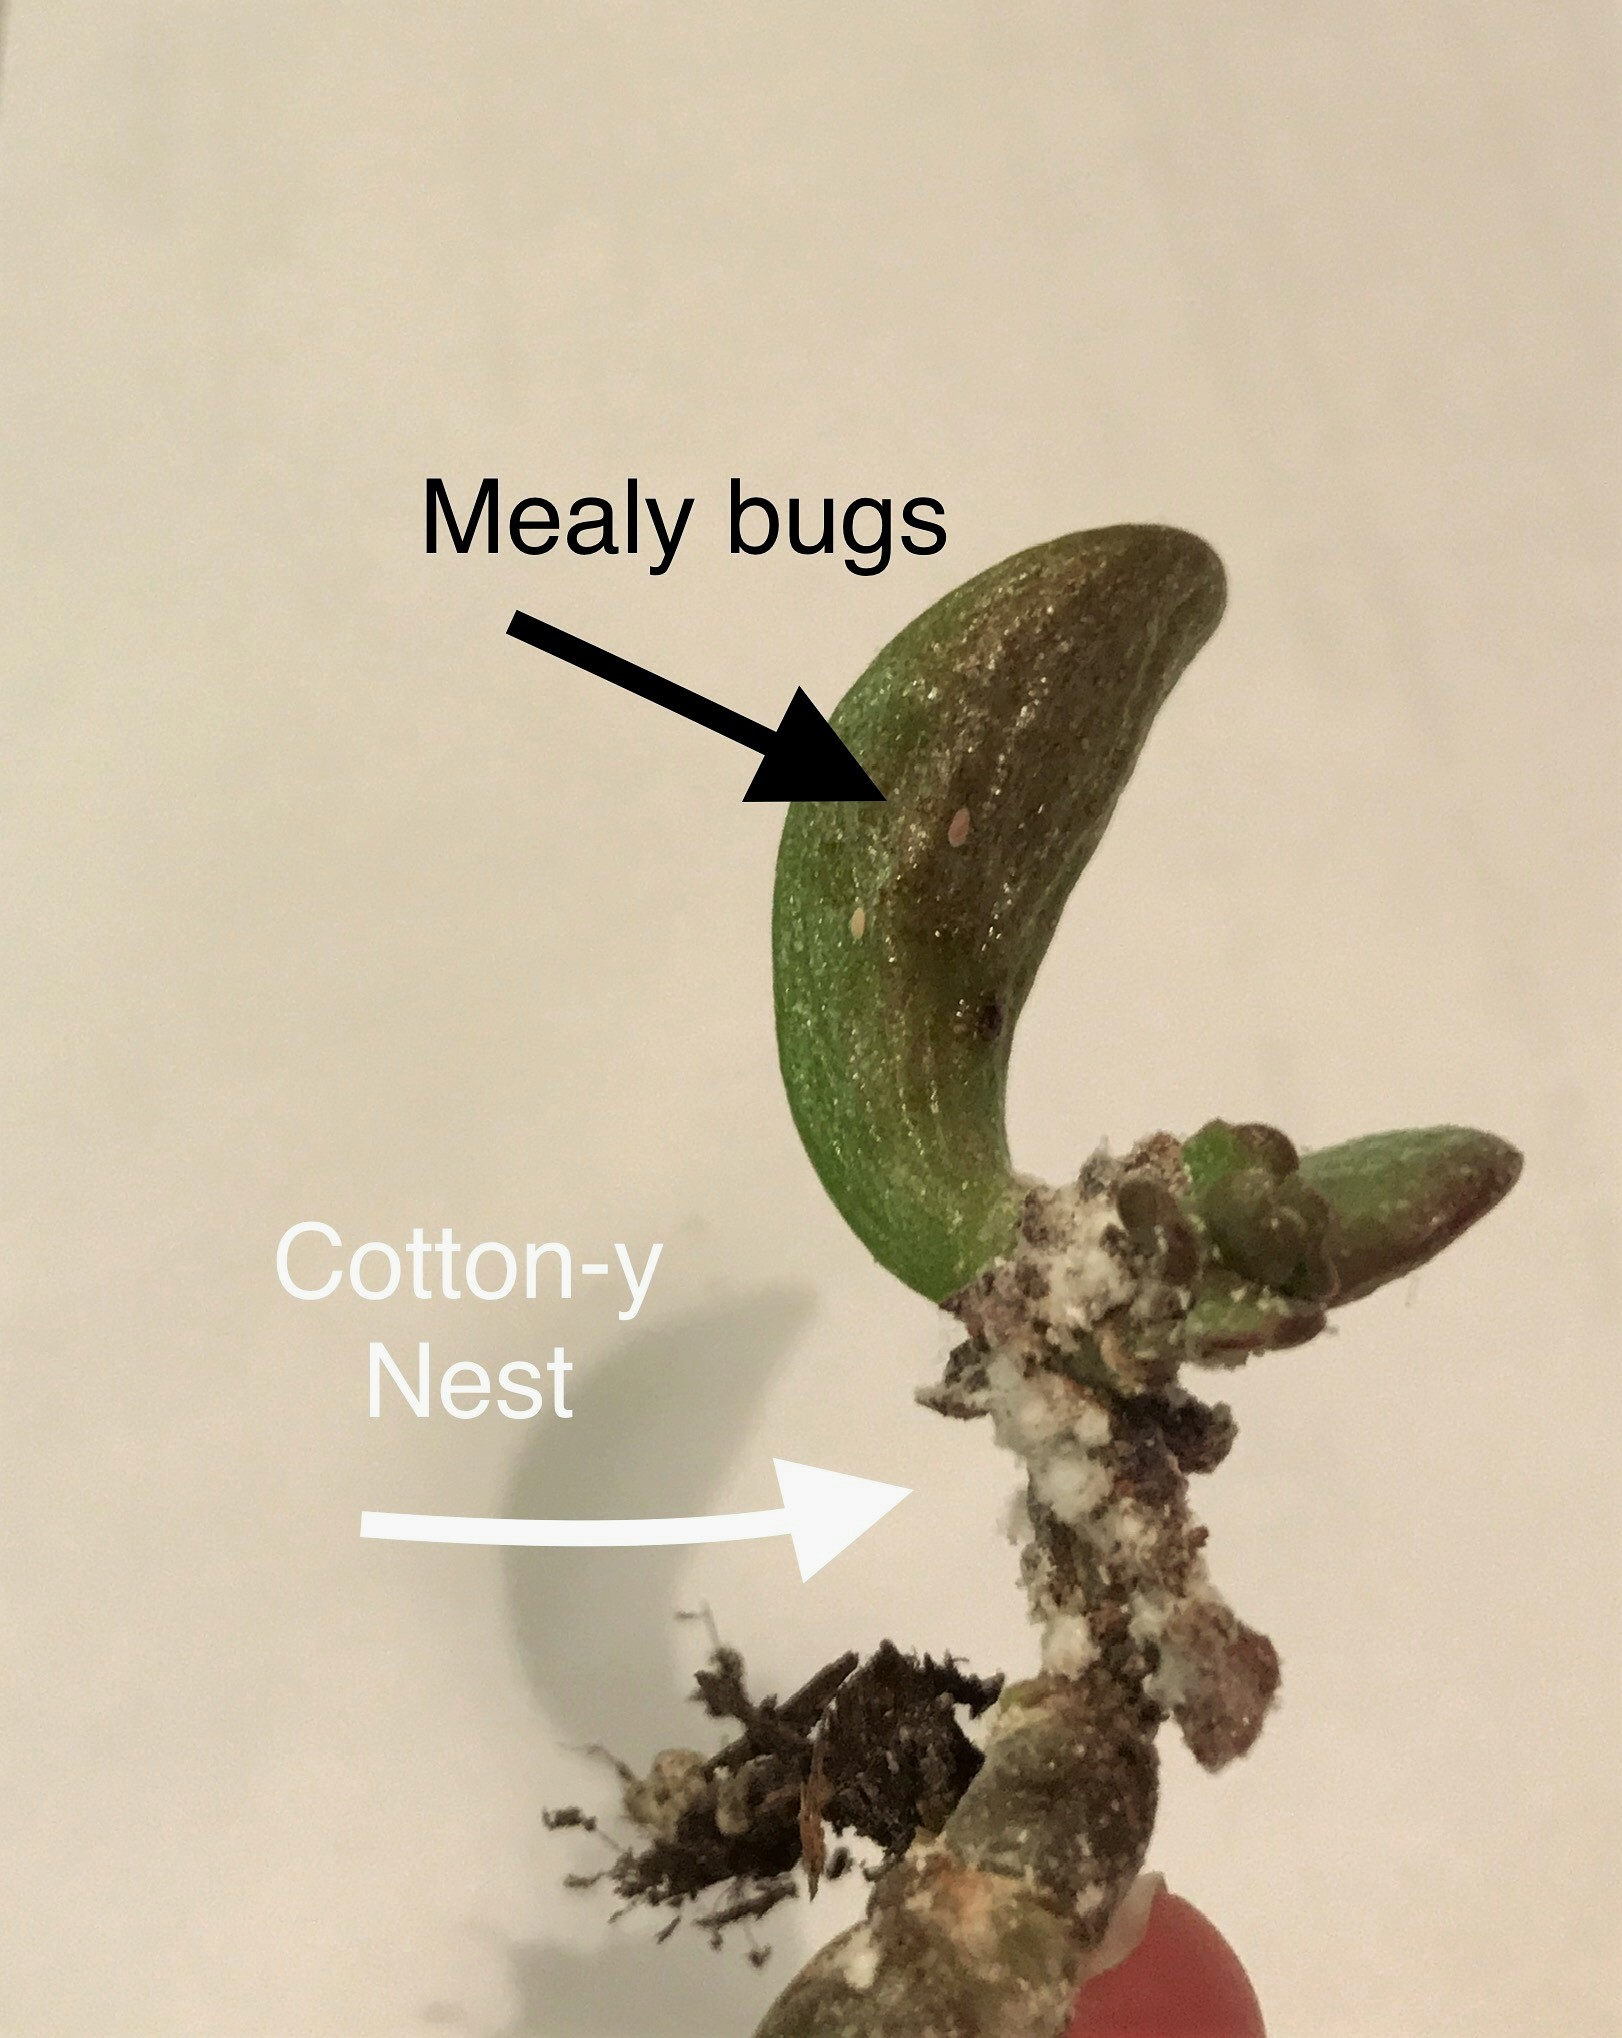 Mealy bugs - Eggs and larvae can be found at leaf and stem joints. Adults have antenna and crawl. They especially enjoy sucking sap from new growth. Depending on the size of infestation, it may be better to discard the entire plant.